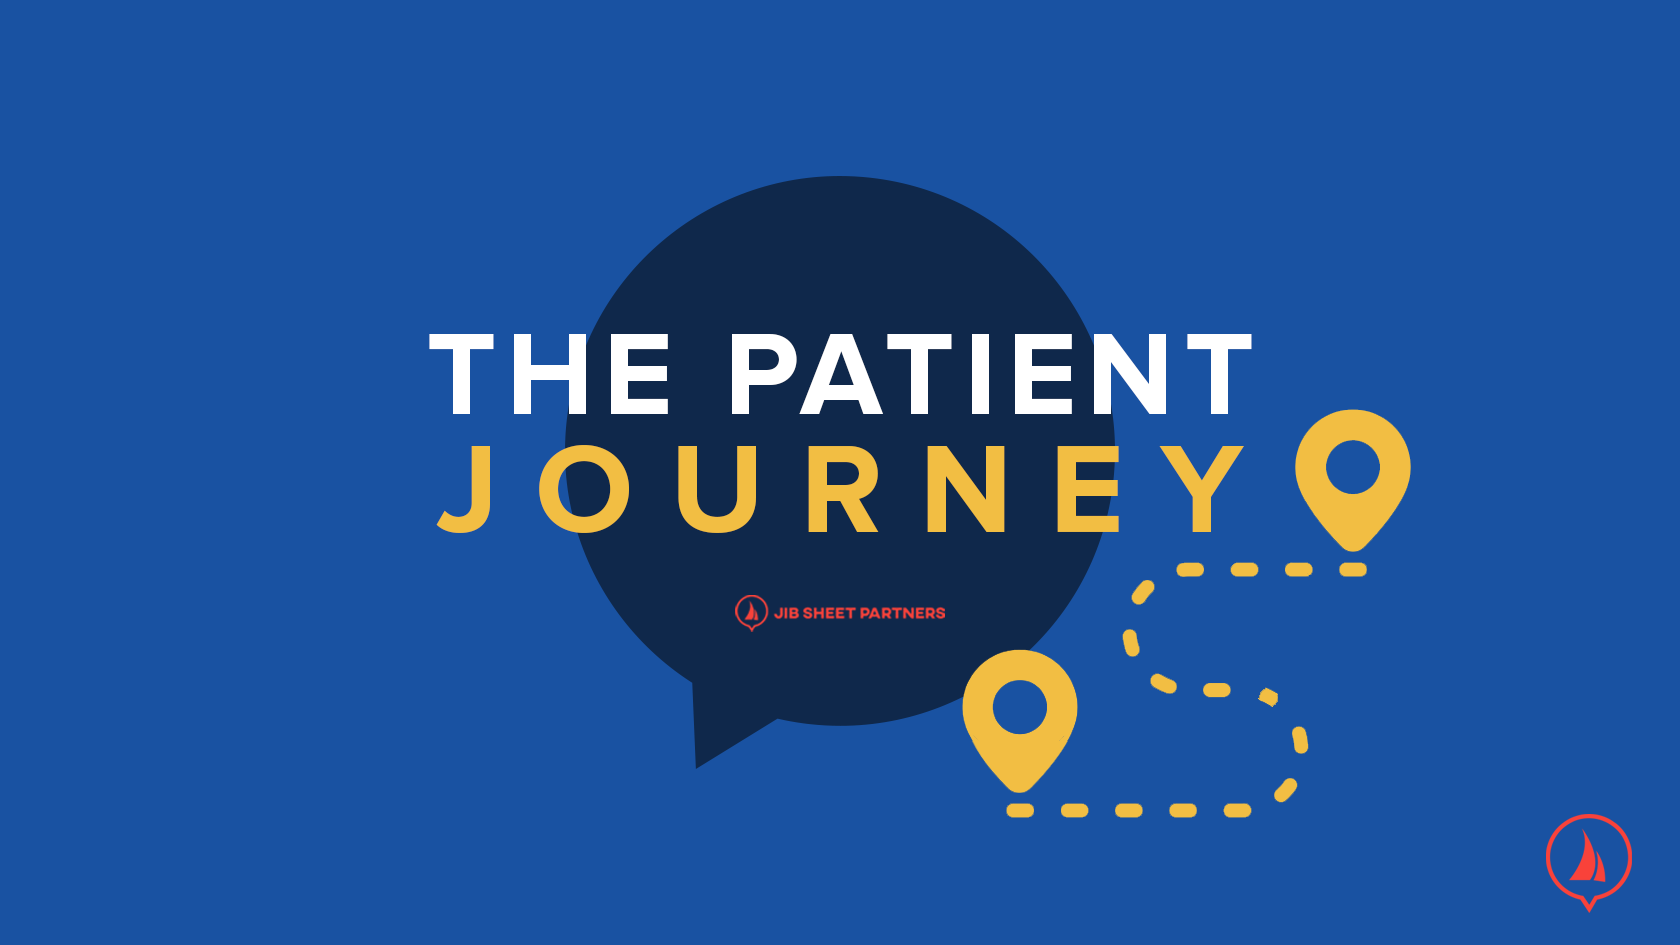 The-Patient-Journey---Healthcare-Marketing-and-Online-Presence-Management---Jib-Sheet-Partners